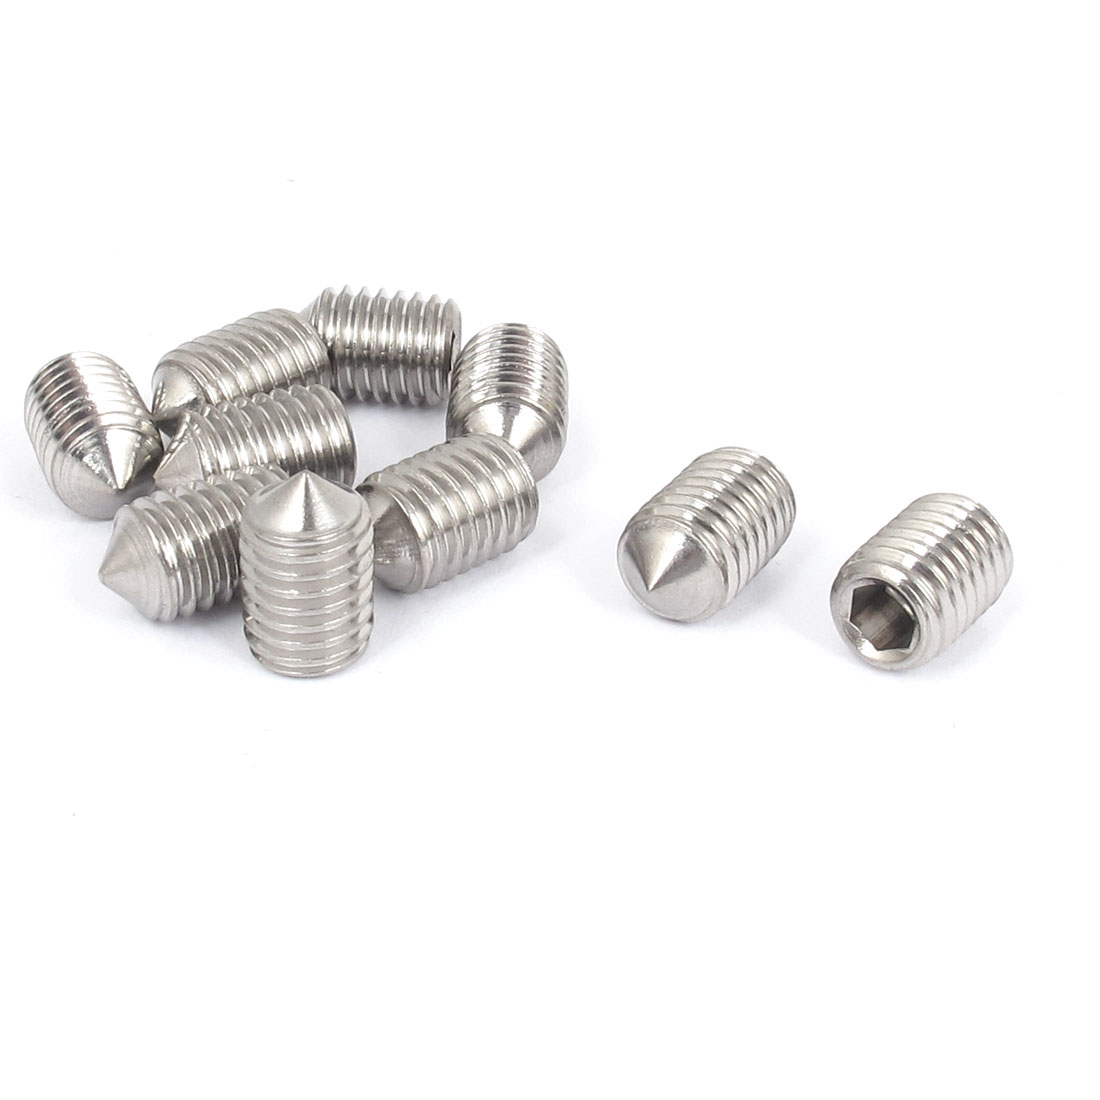 M10x16mm 304 Stainless Steel Cone Point Hexagon Socket Grub Screws 10pcs